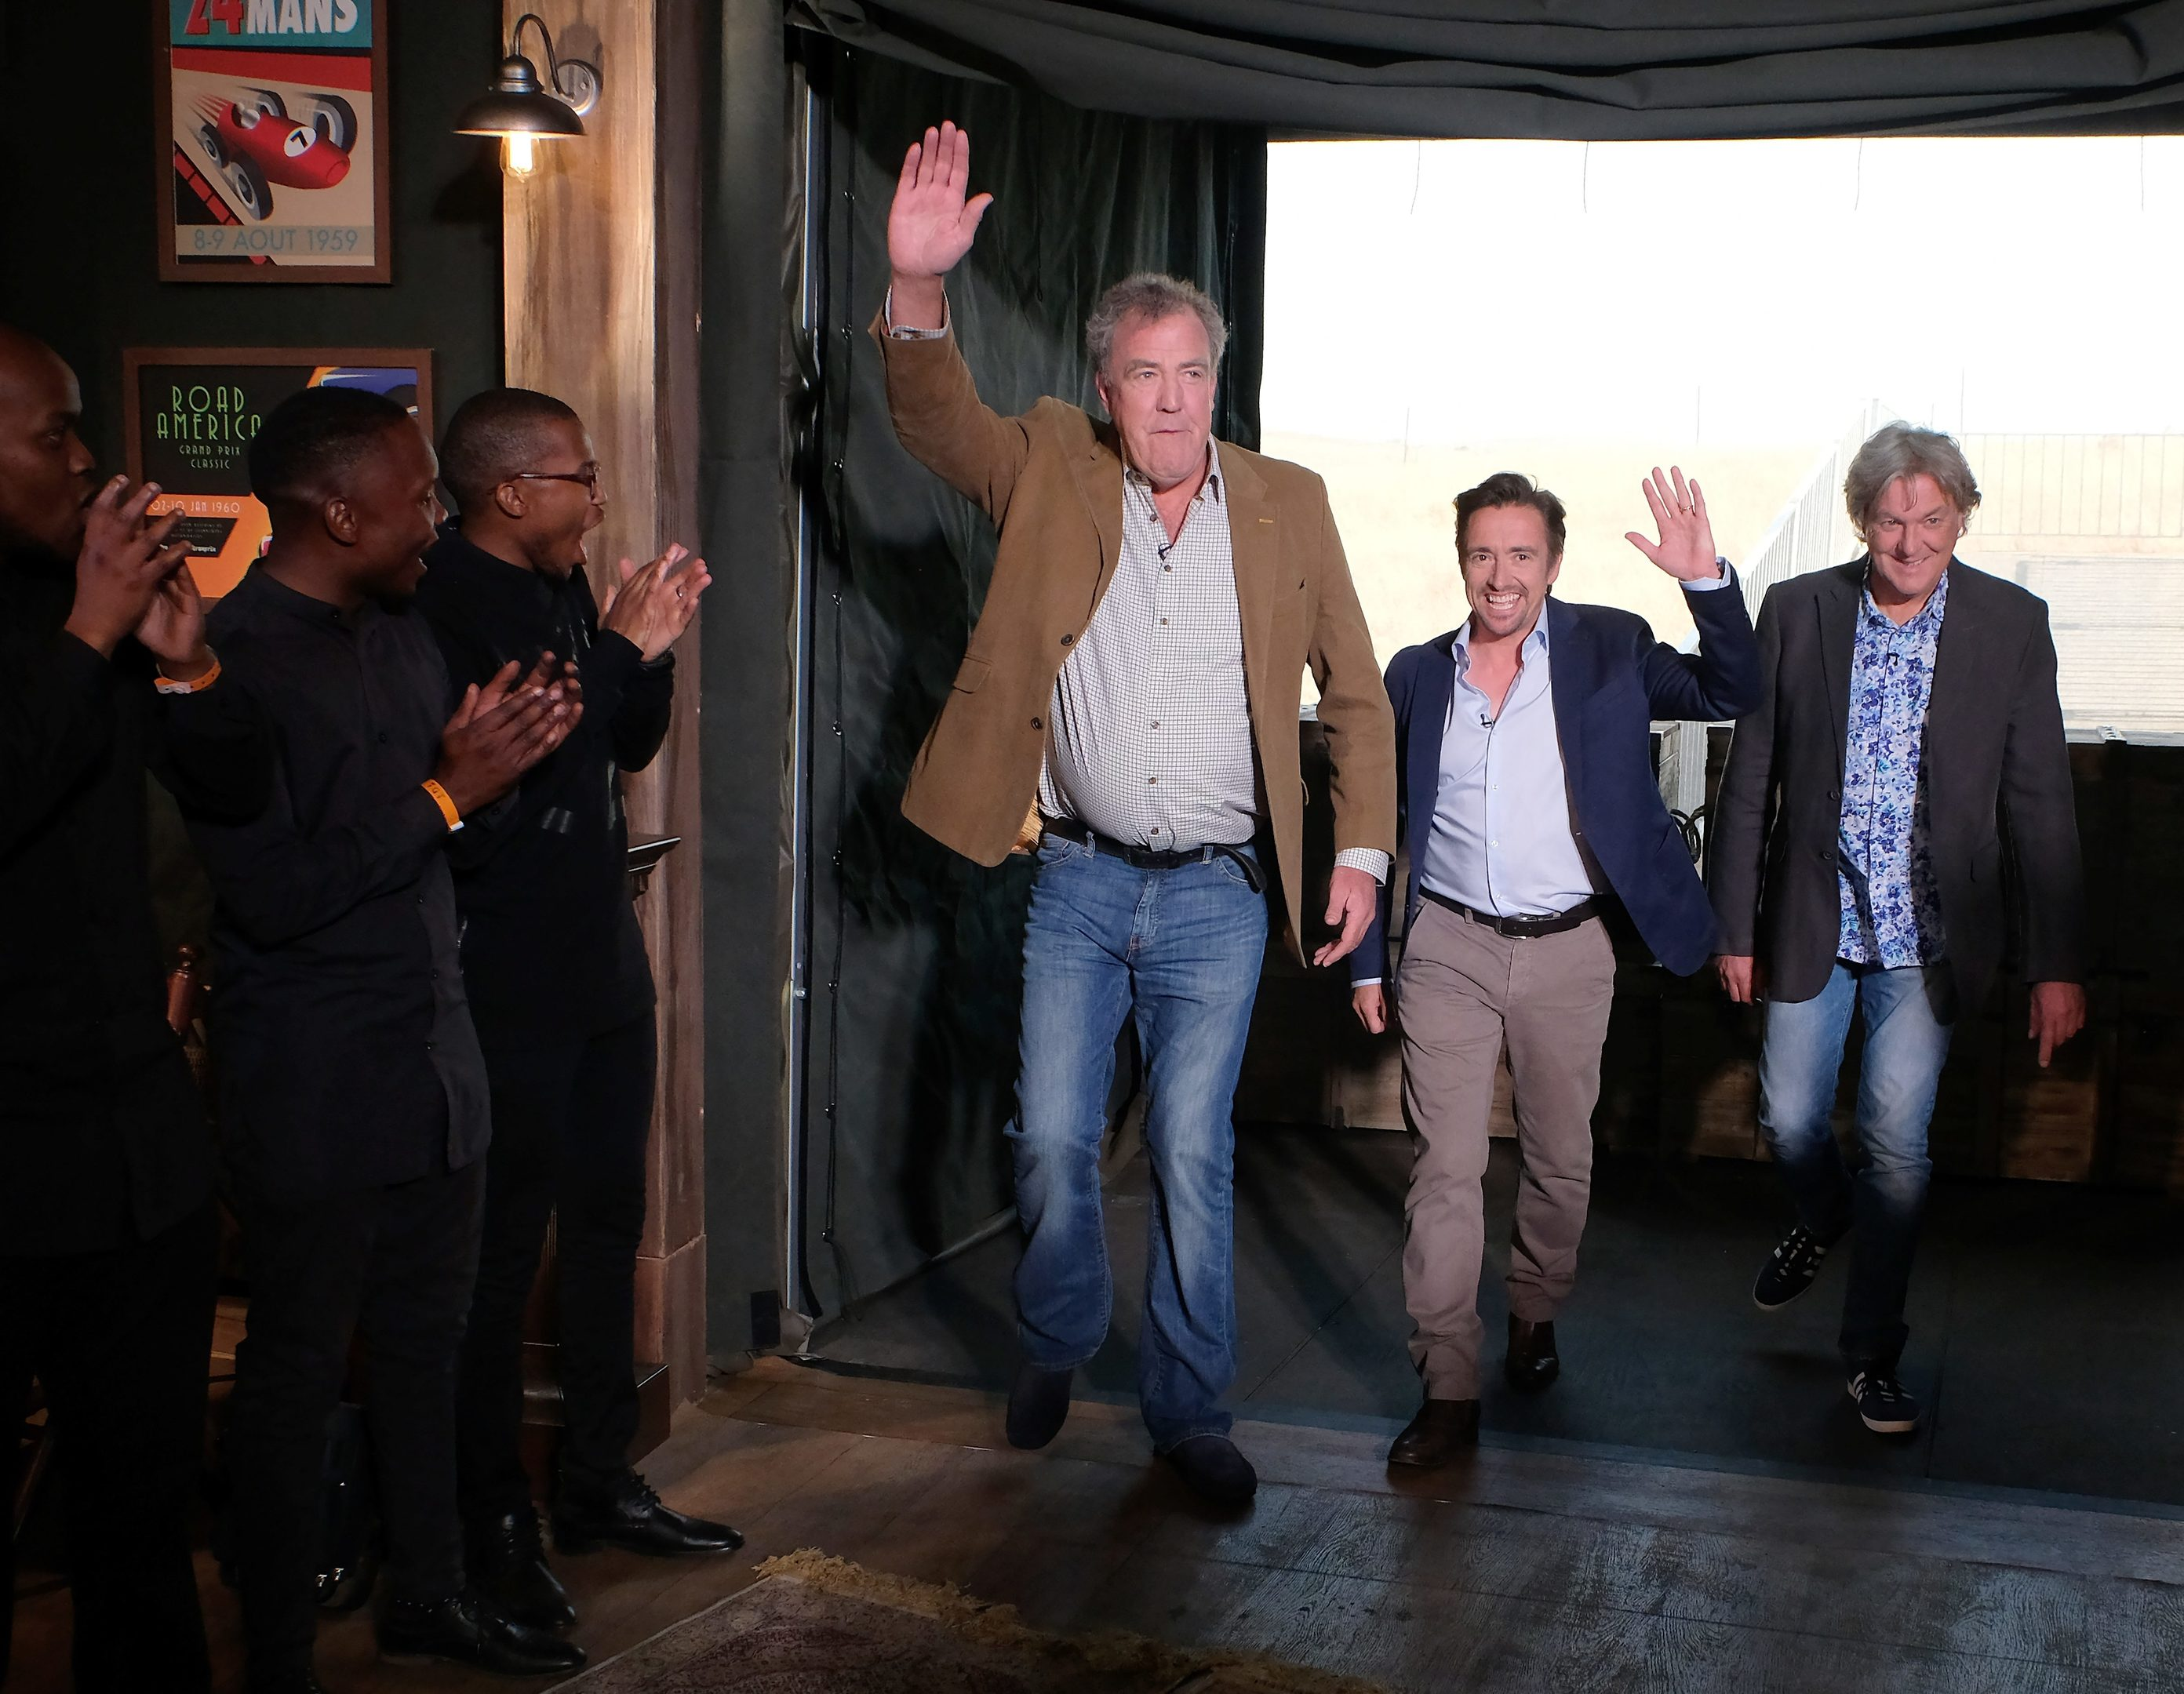 Jeremy Clarkson, Richard Hammond and James May enter The Grand Tour studio.